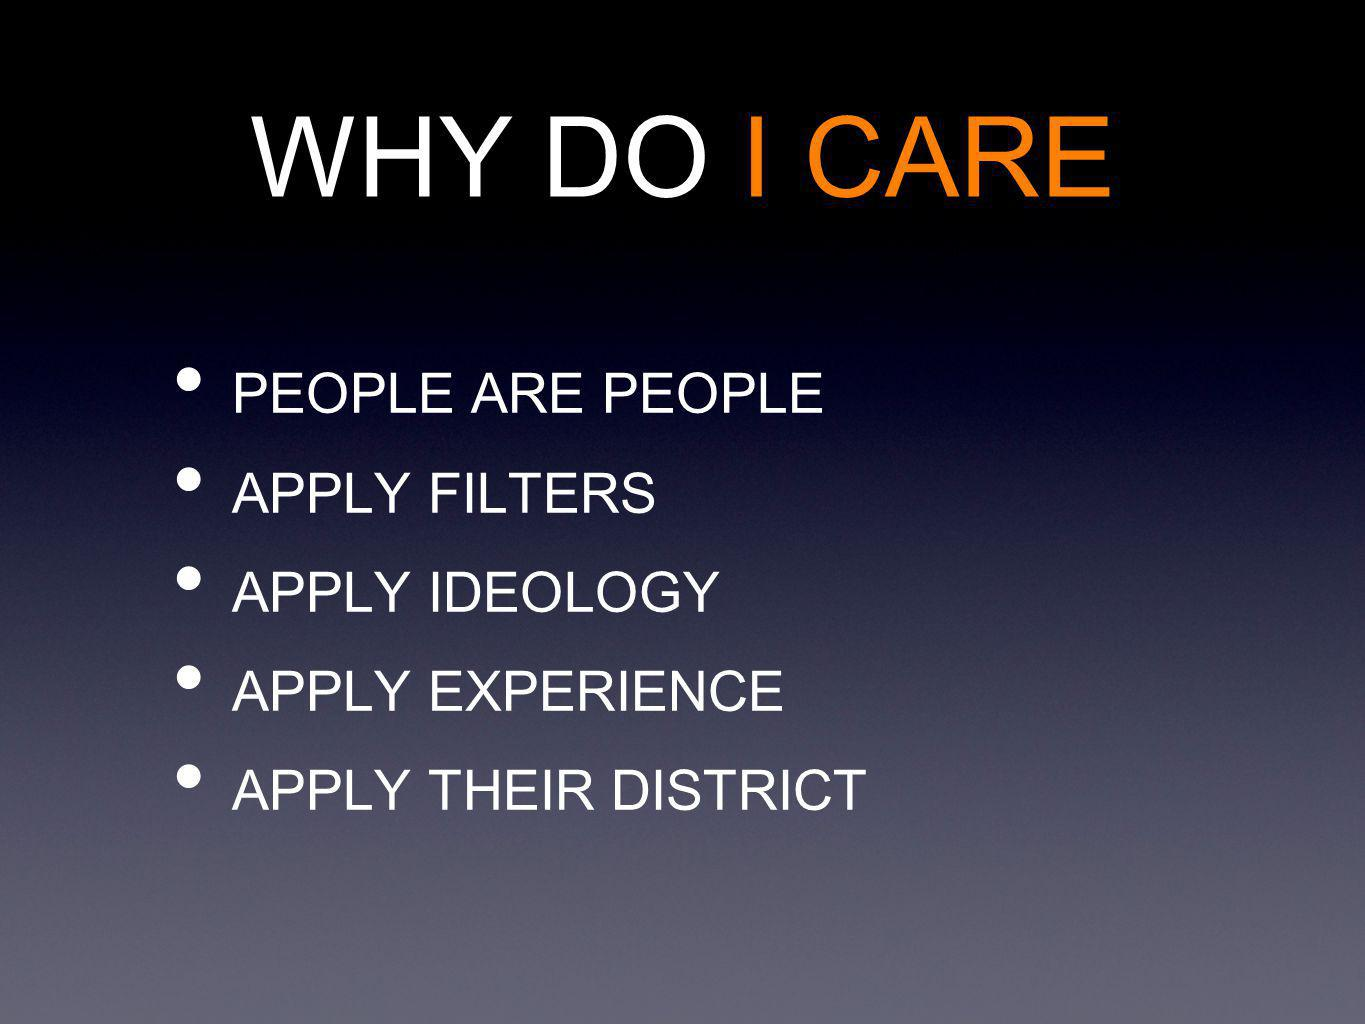 WHY DO I CARE PEOPLE ARE PEOPLE APPLY FILTERS APPLY IDEOLOGY APPLY EXPERIENCE APPLY THEIR DISTRICT